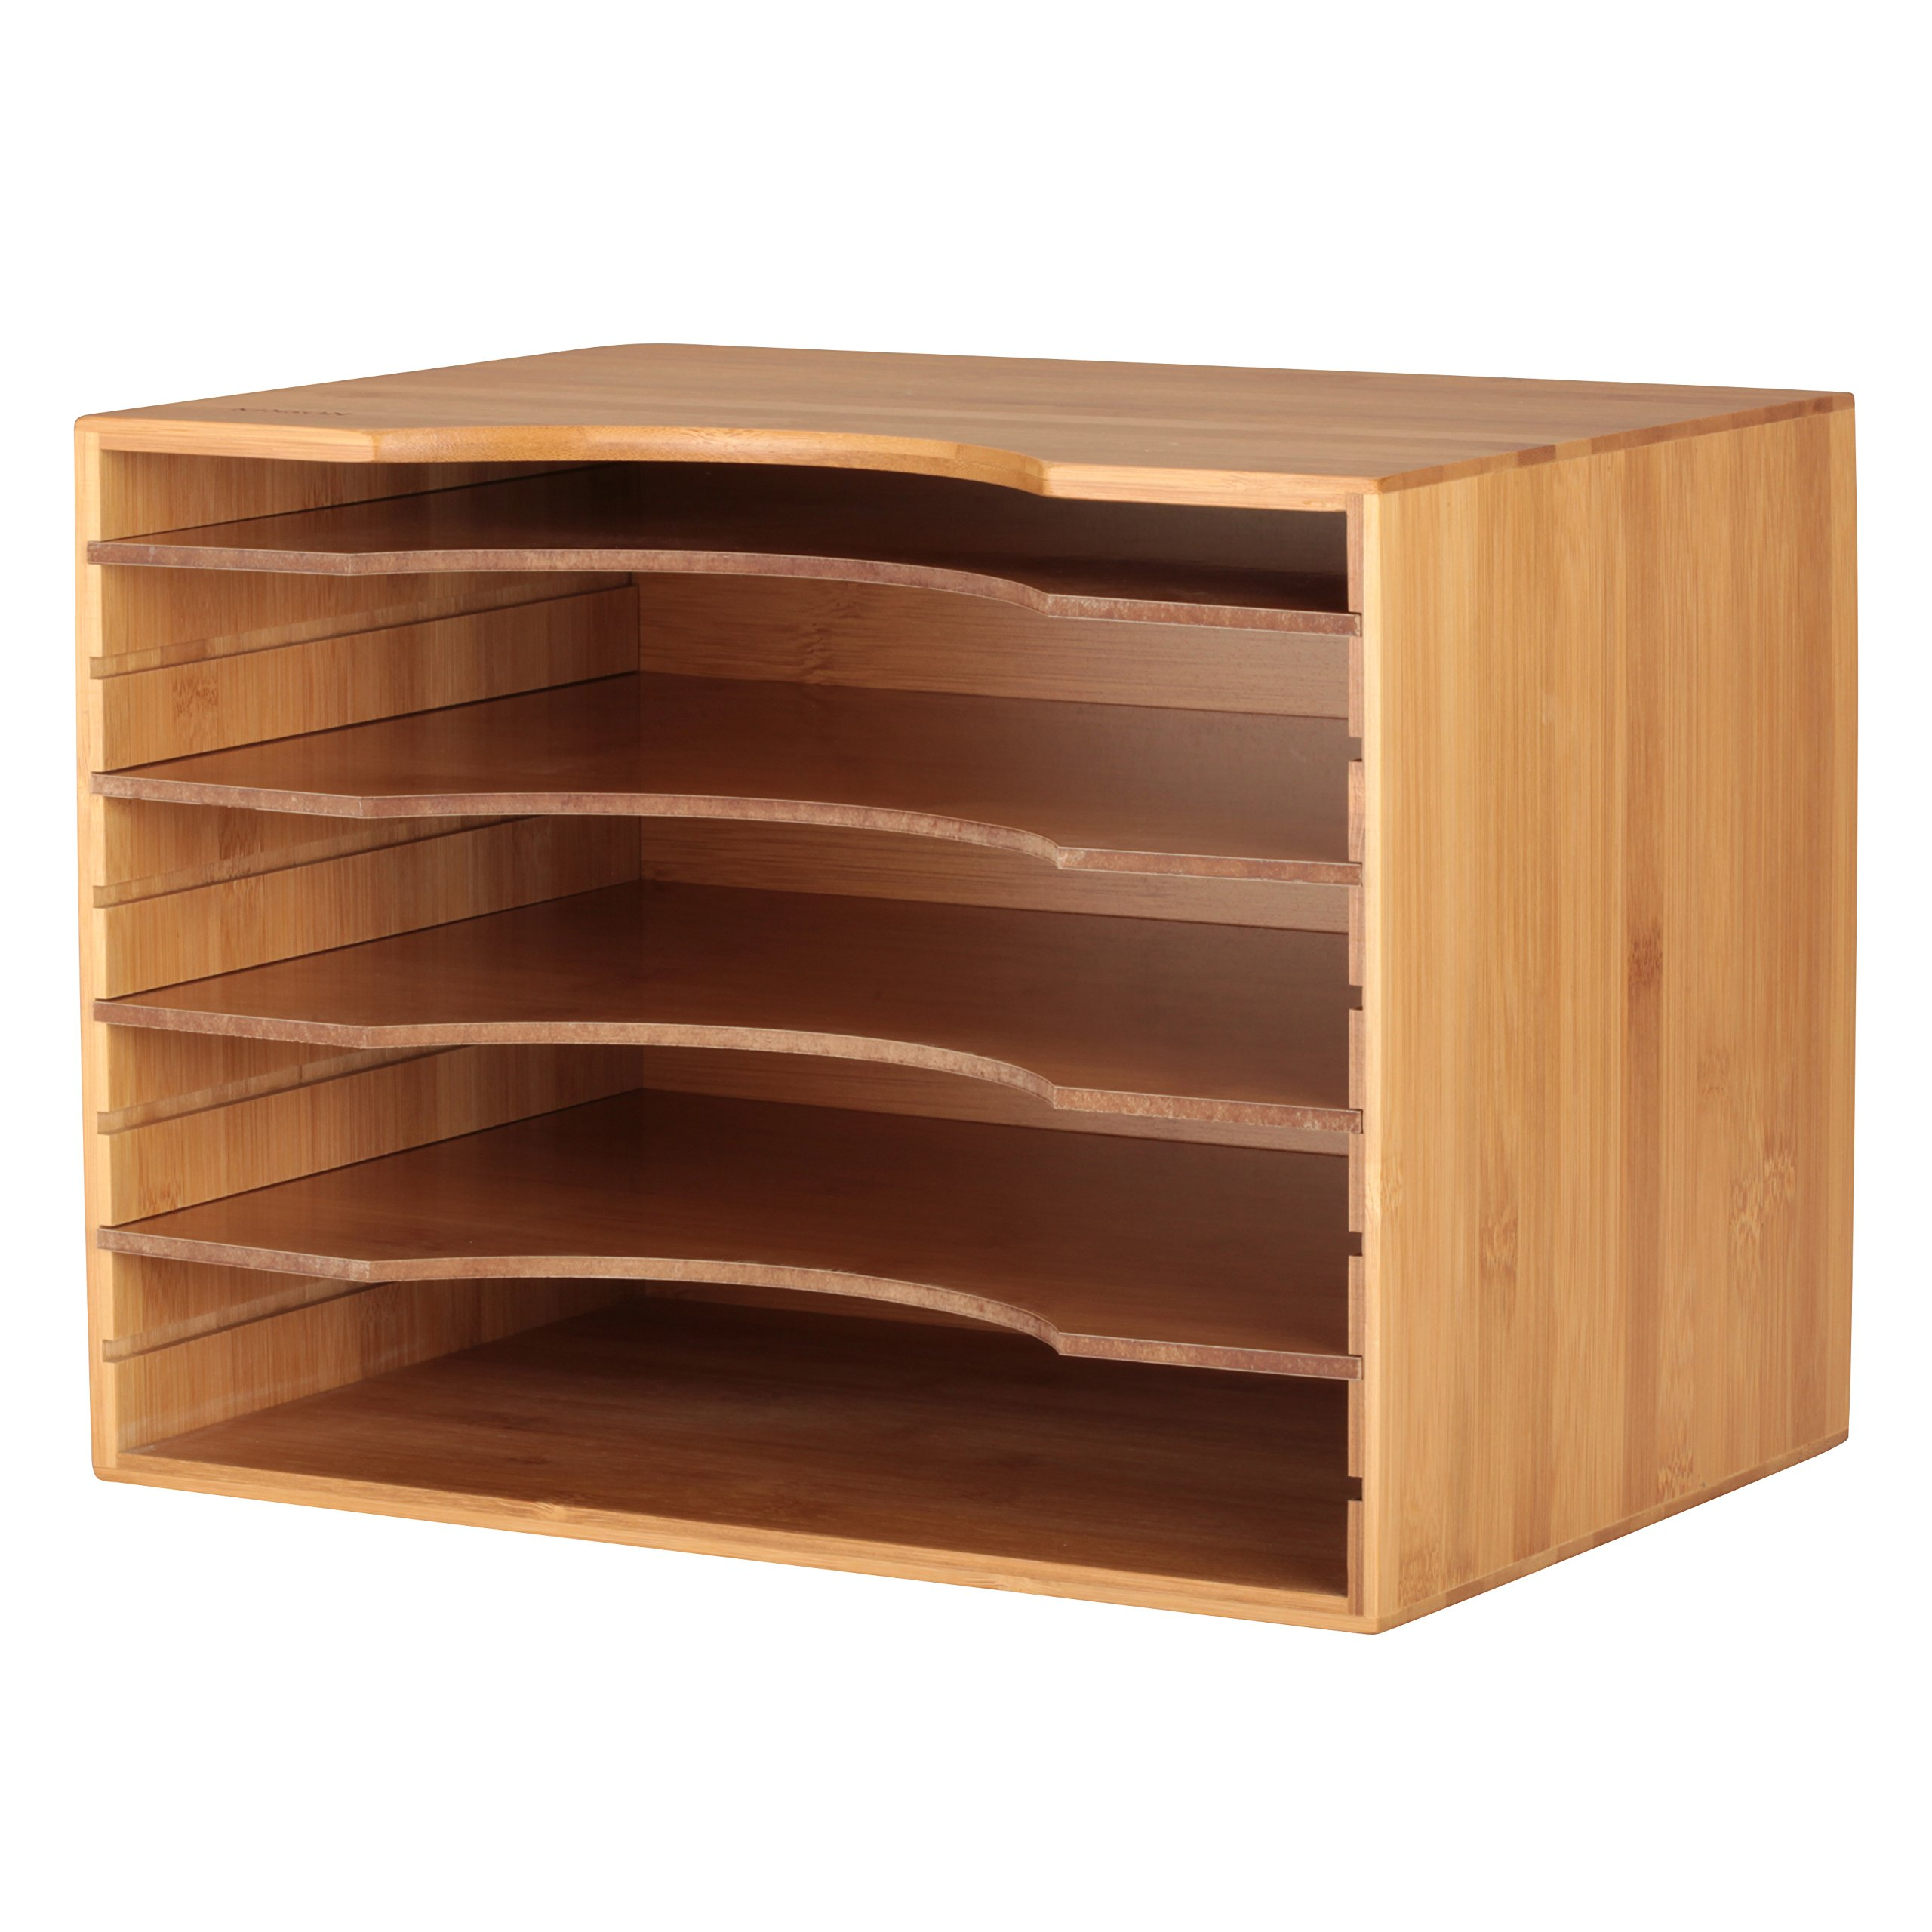 KINSON Bamboo File Organizer with Adjustable Shelves Dividers